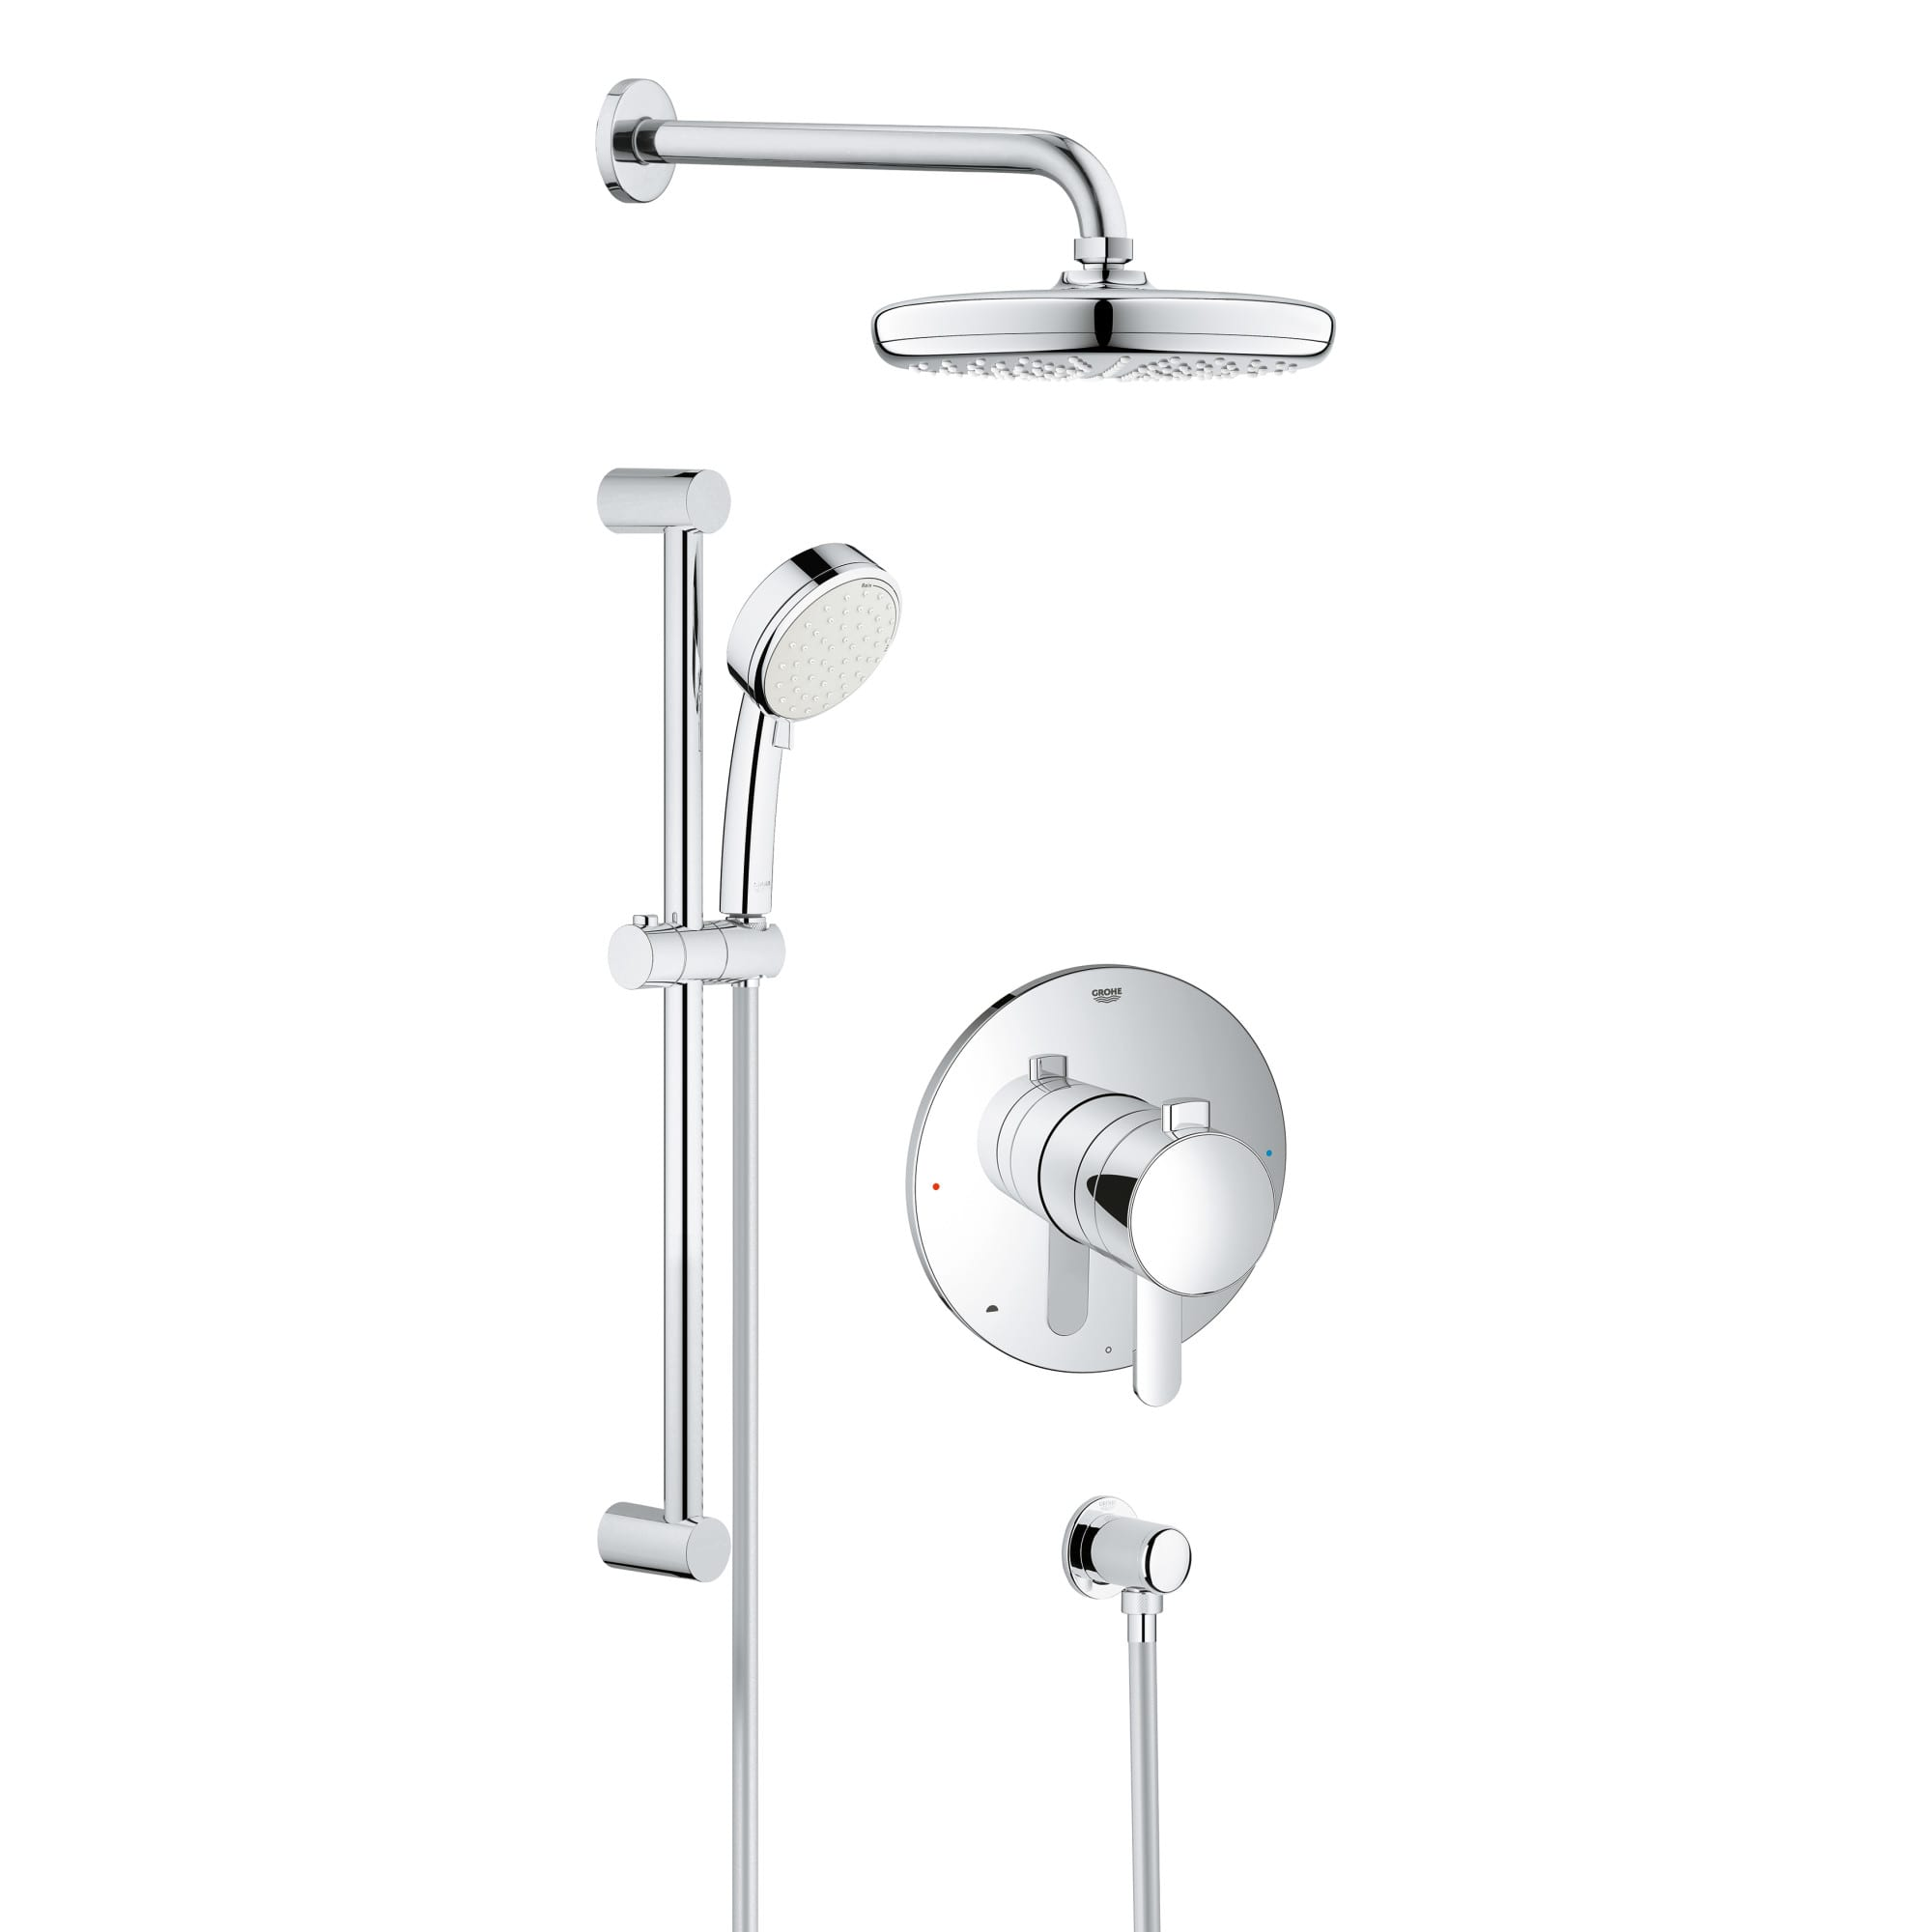 euphoria mounting of best thermostat for b with xxl systems wall grohe system thermostatic shower mixer